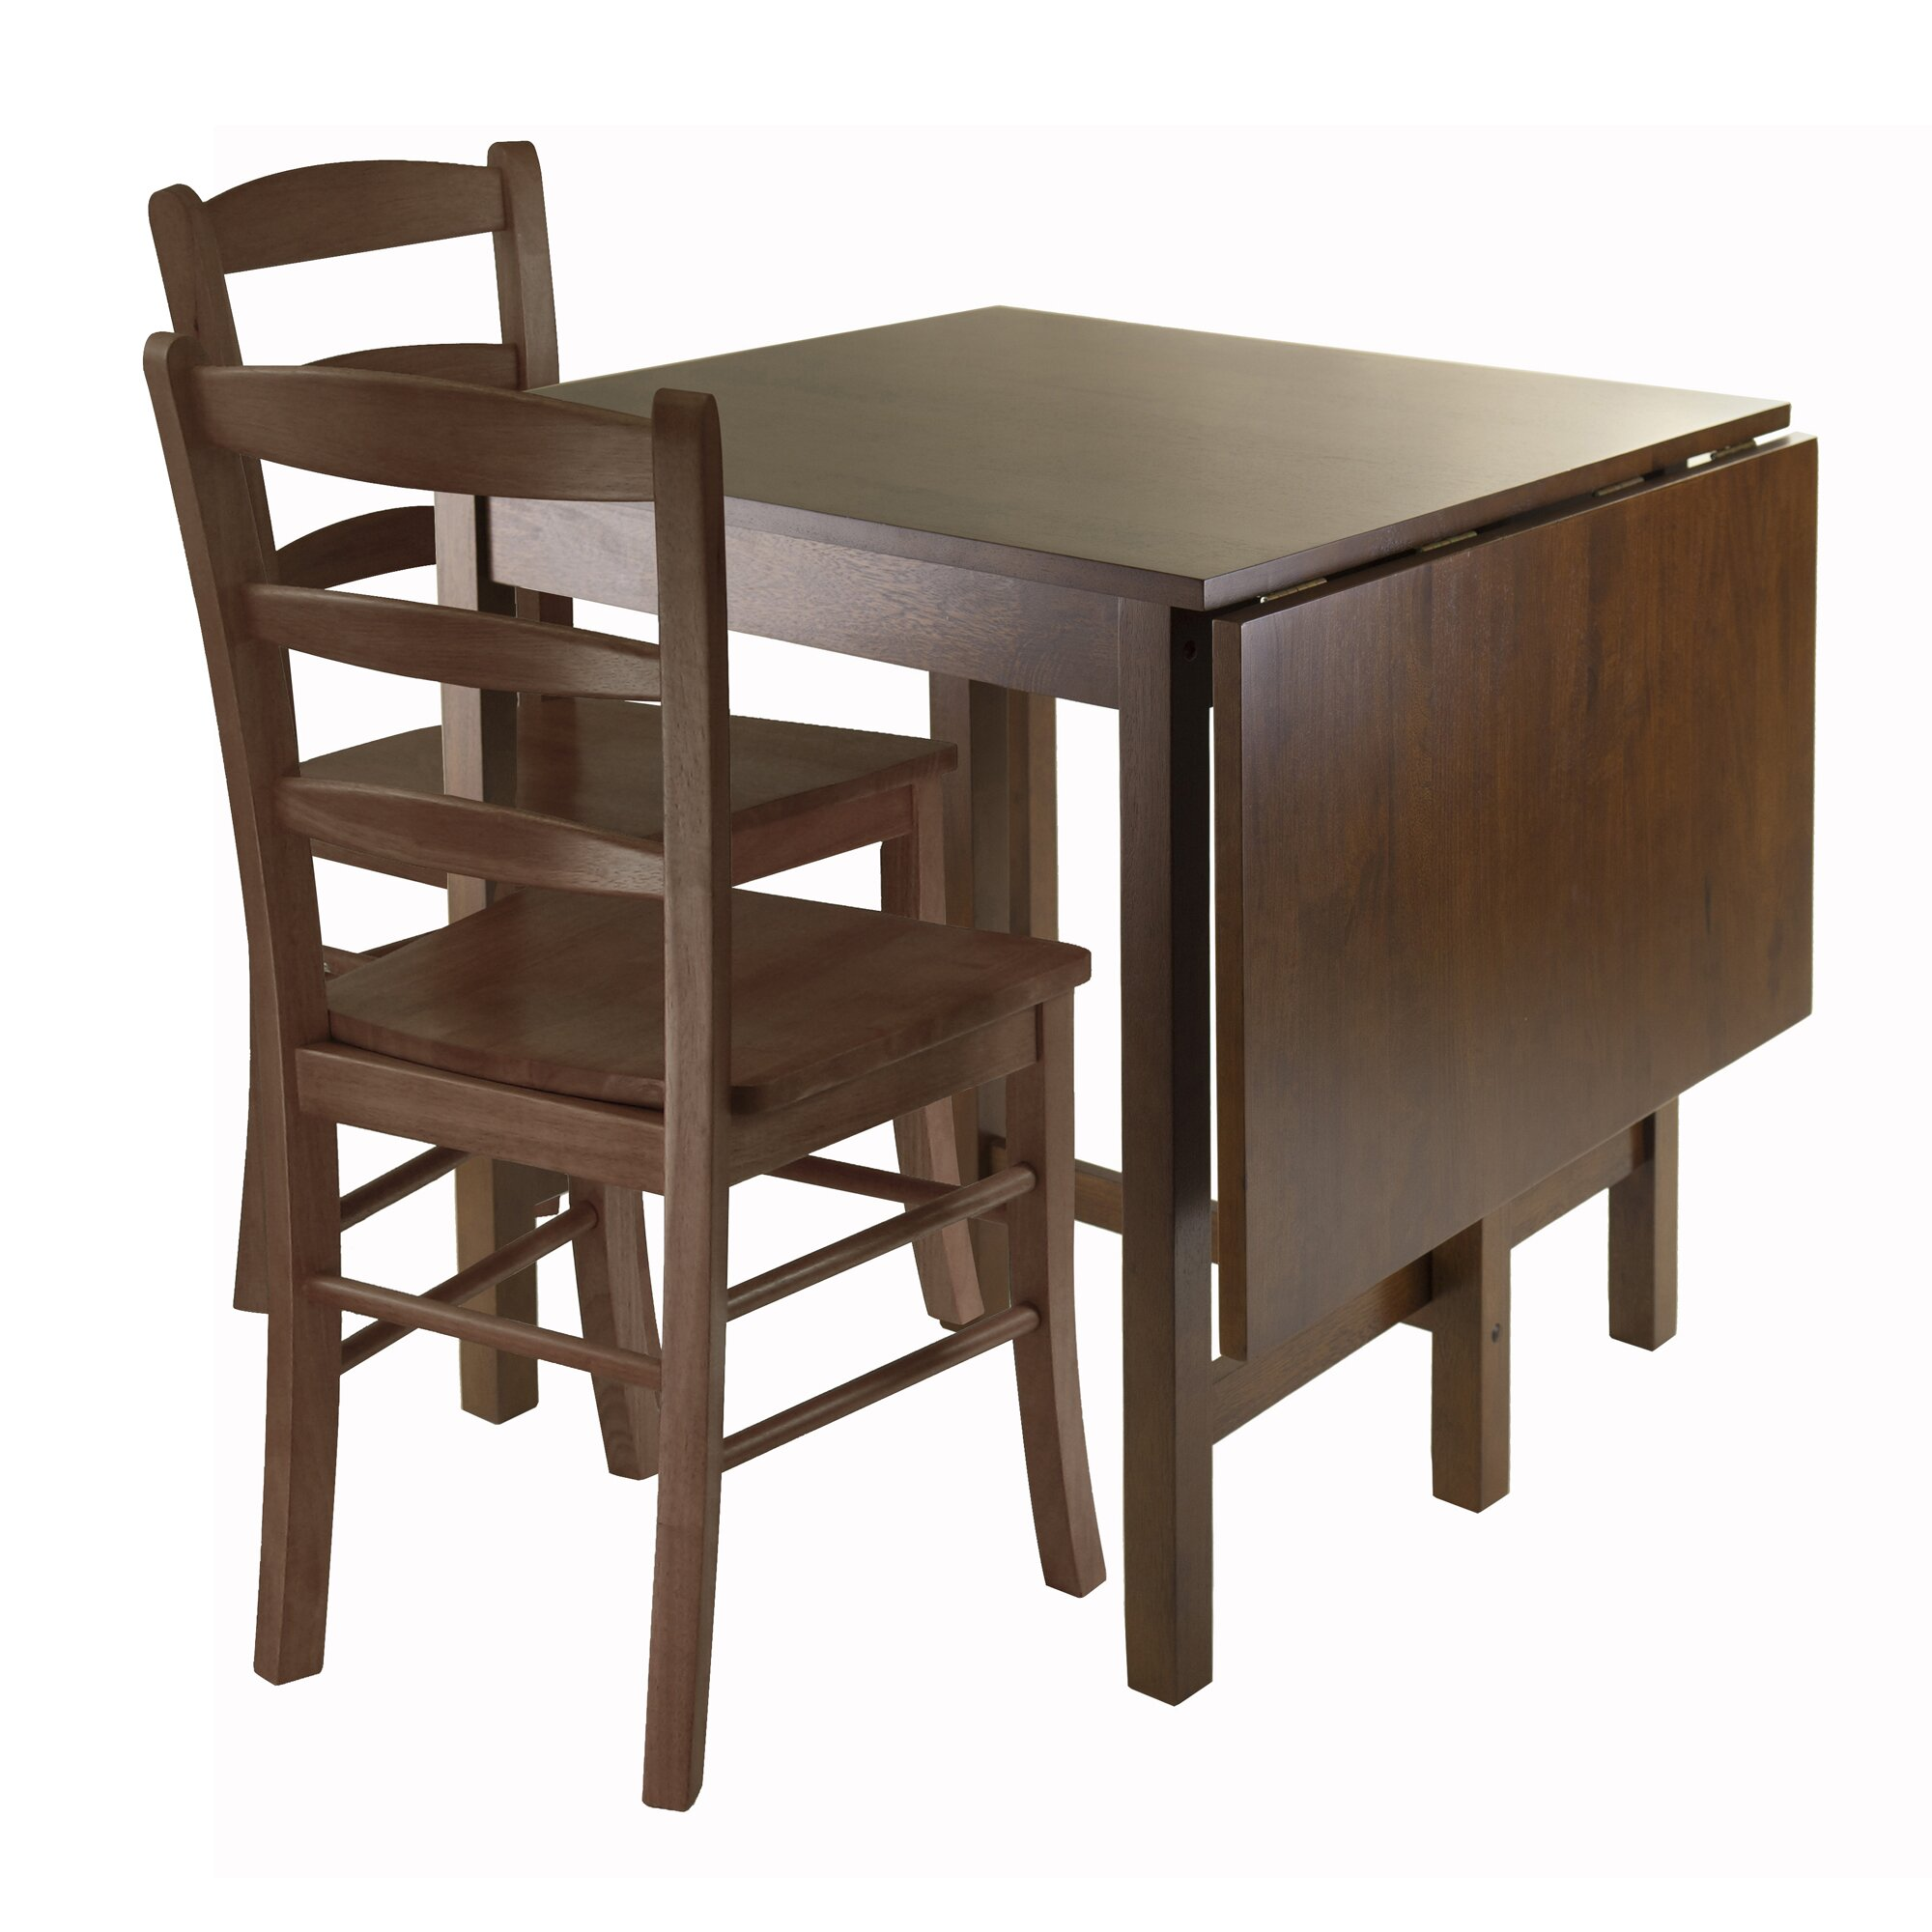 Winsome lynden 3 piece dining set reviews wayfair for Dining room 3 piece set